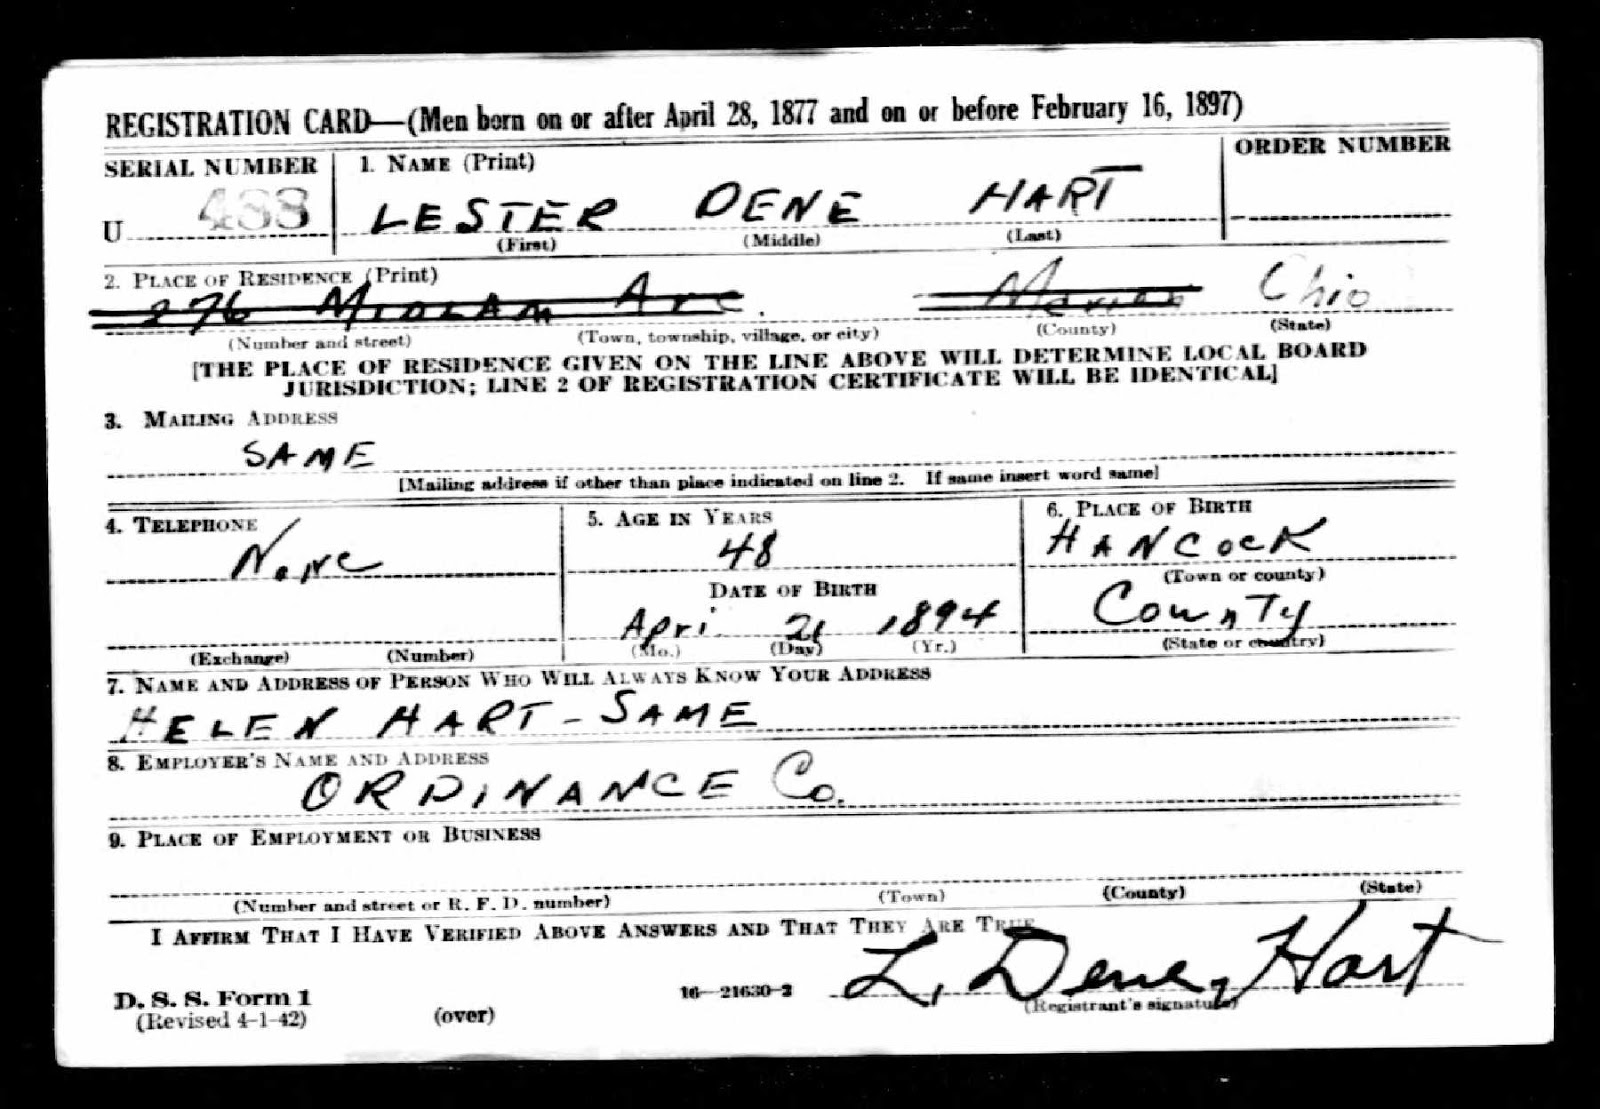 Climbing My Family Tree: WWII Draft Registration Card for Lester Dene Hart, front page